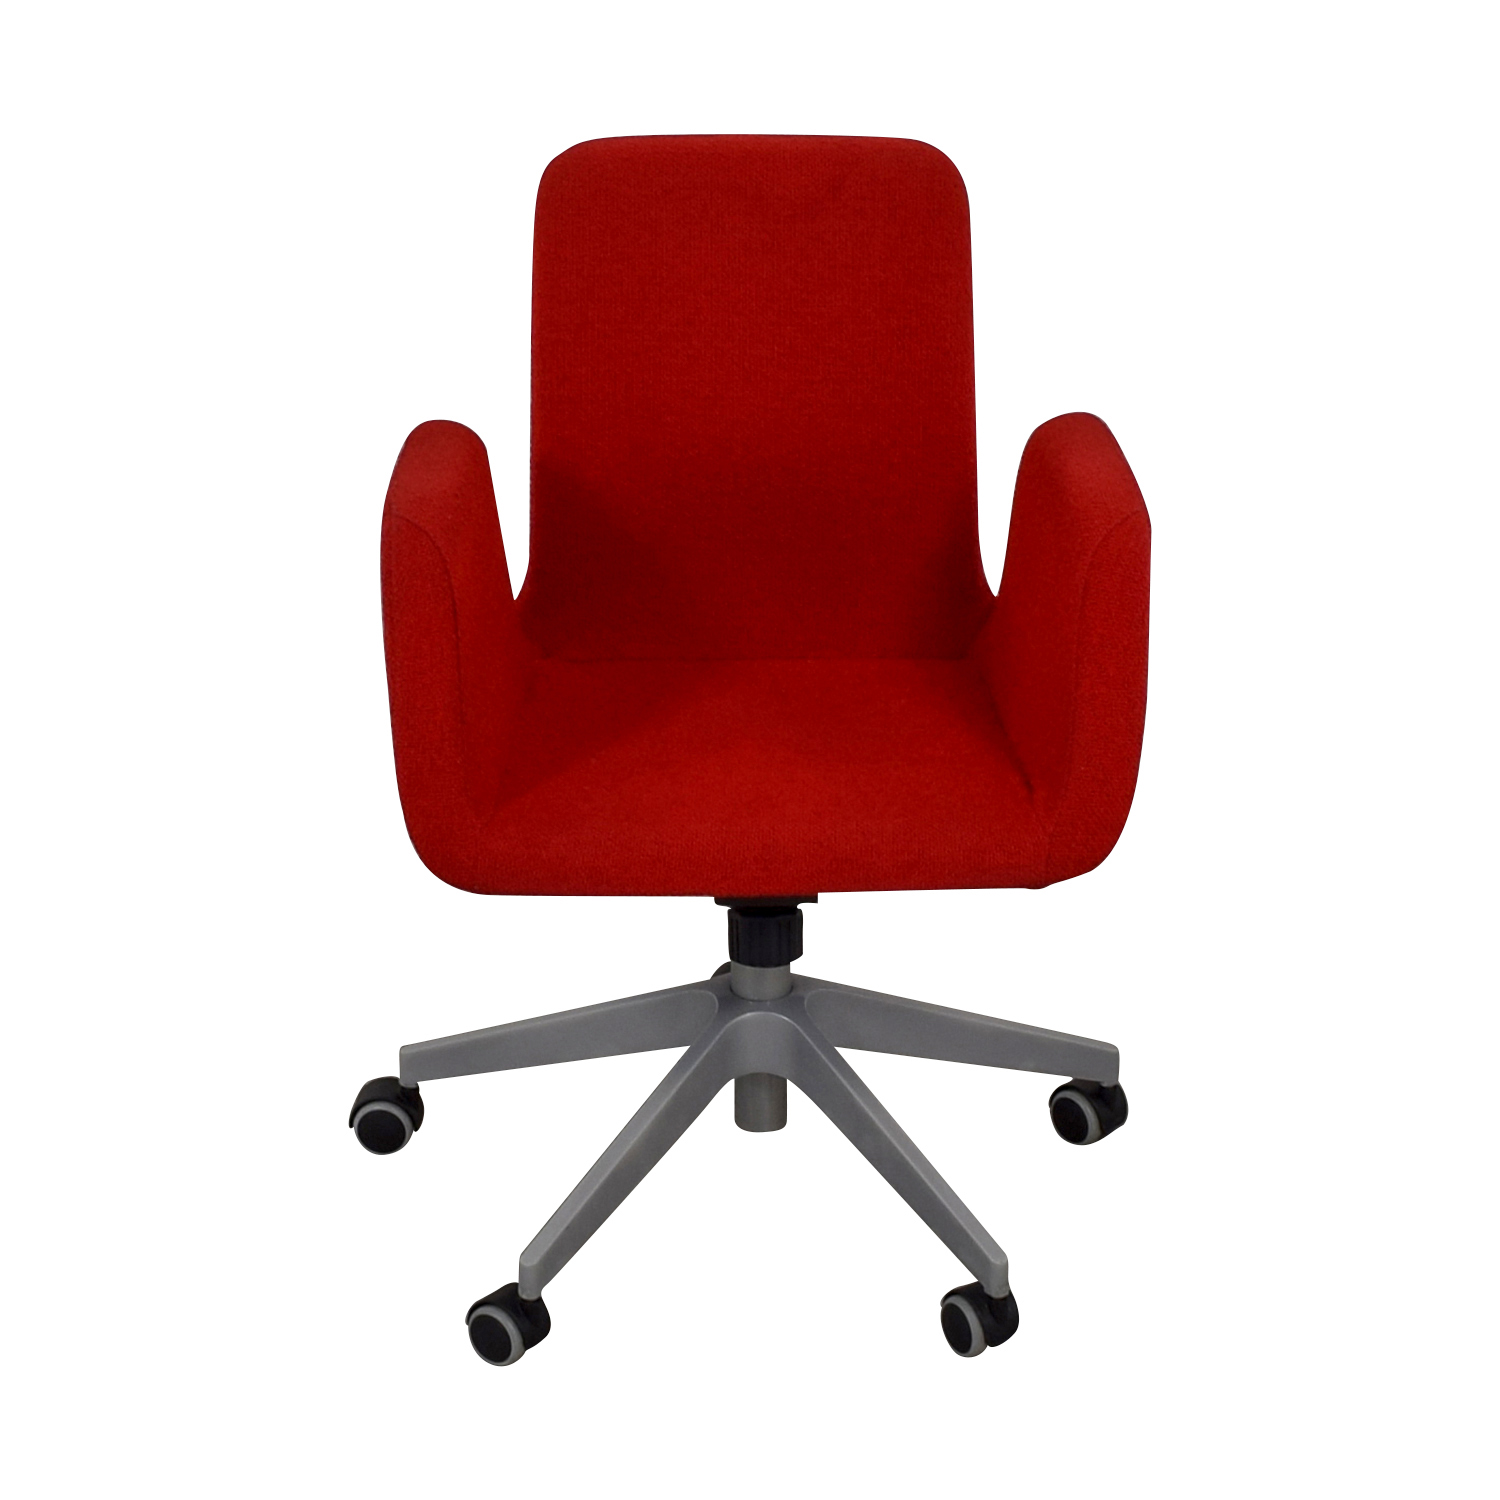 79 Off Ikea Ikea Patrik Red Rolling Desk Chair Chairs